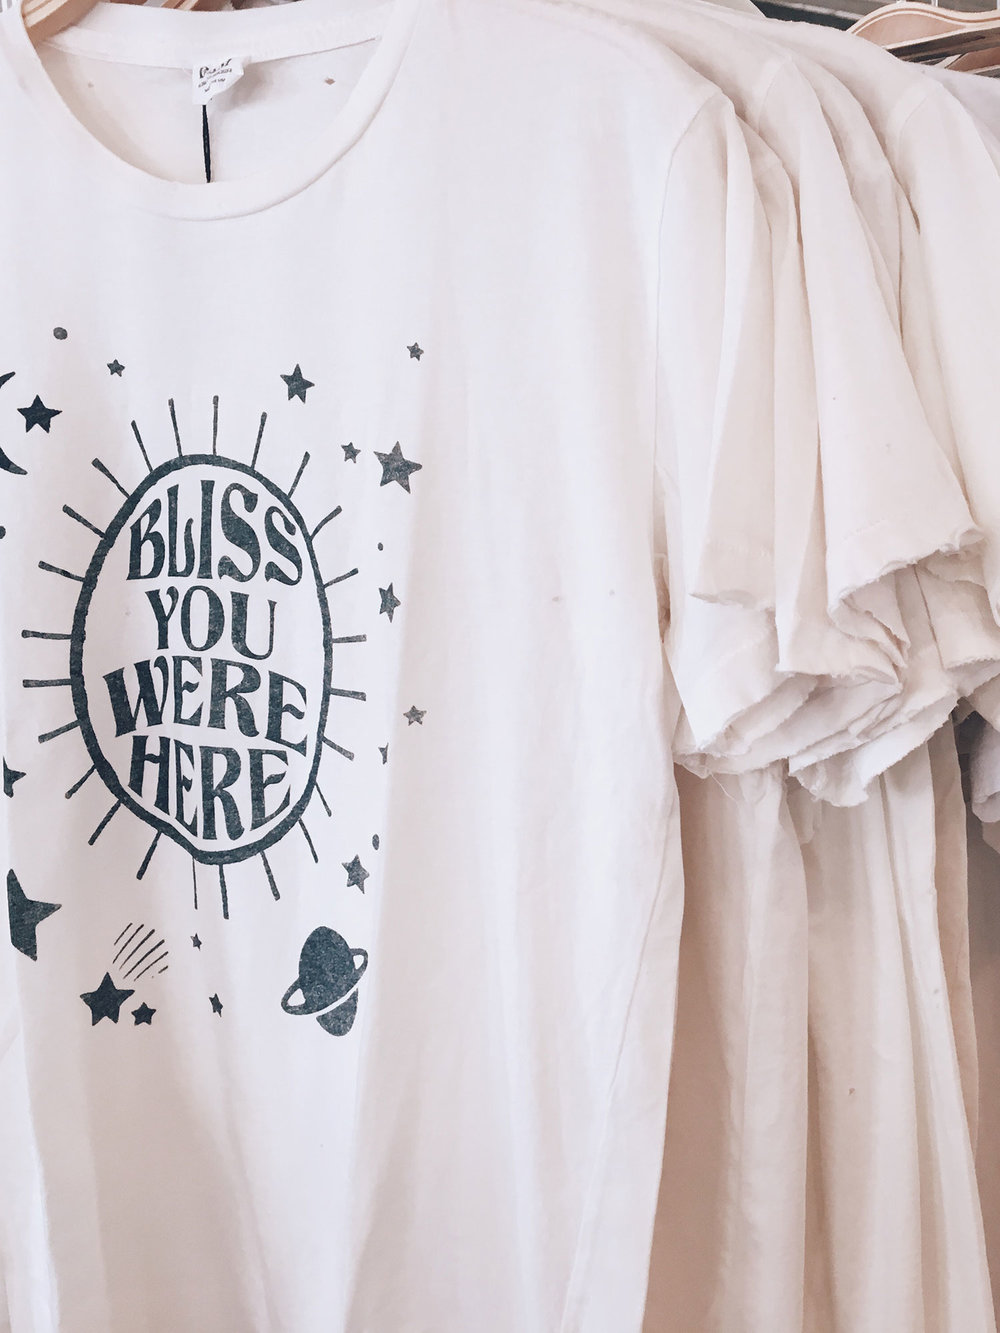 """Made with Care -Here in Los Angeles. - """"L.A. is one of the best places in the world to make t-shirts. They hold up beautfully over time (self-tested by me daily).""""-Hillary Designer/Founder"""